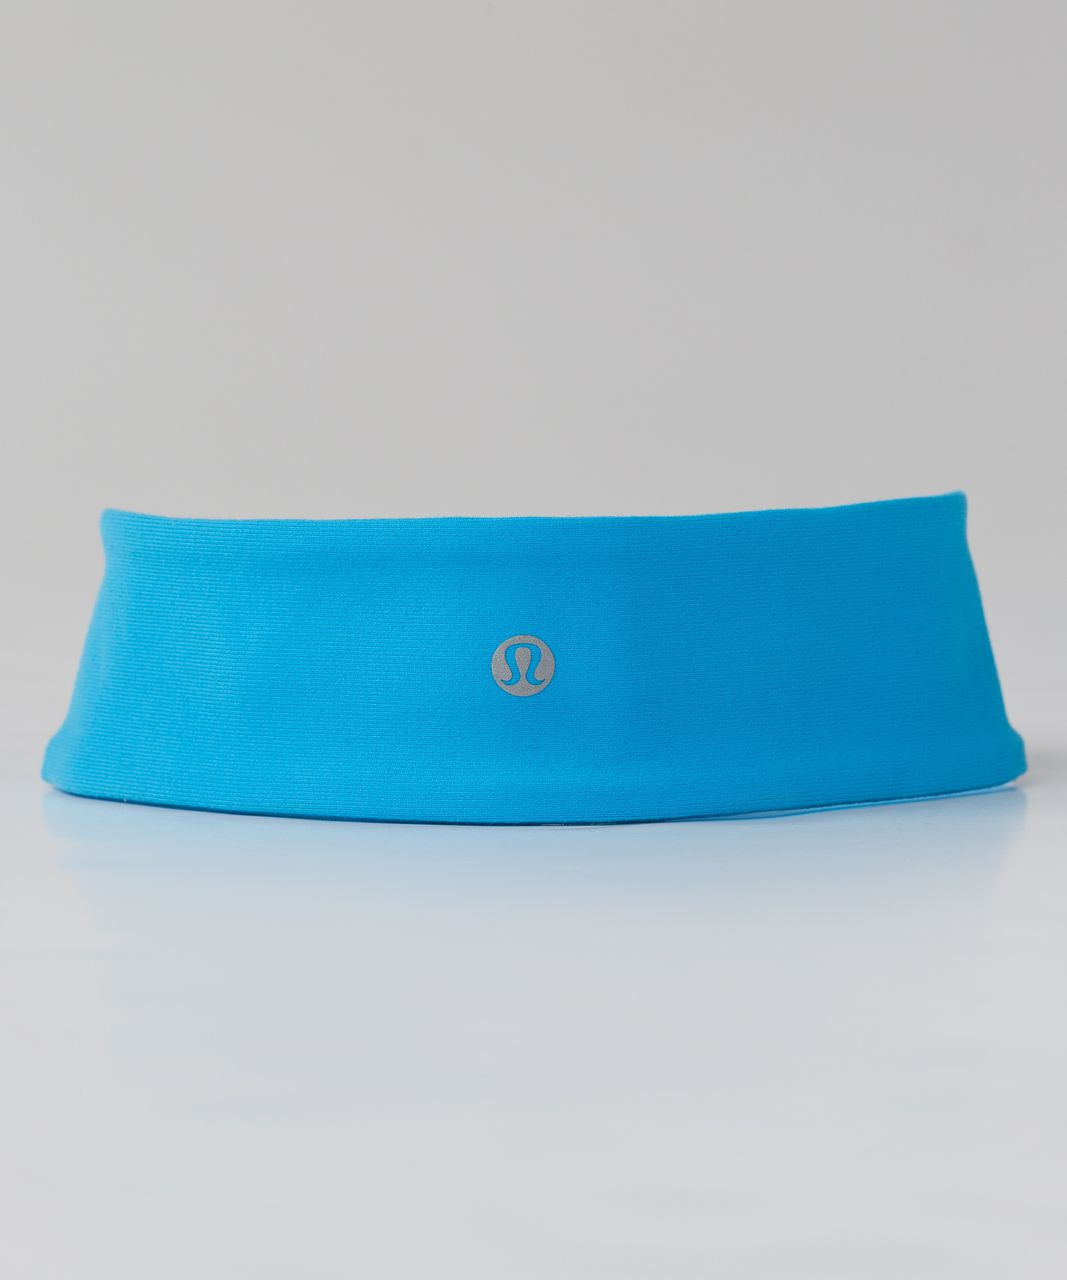 Lululemon Fly Away Tamer Headband II - Kayak Blue